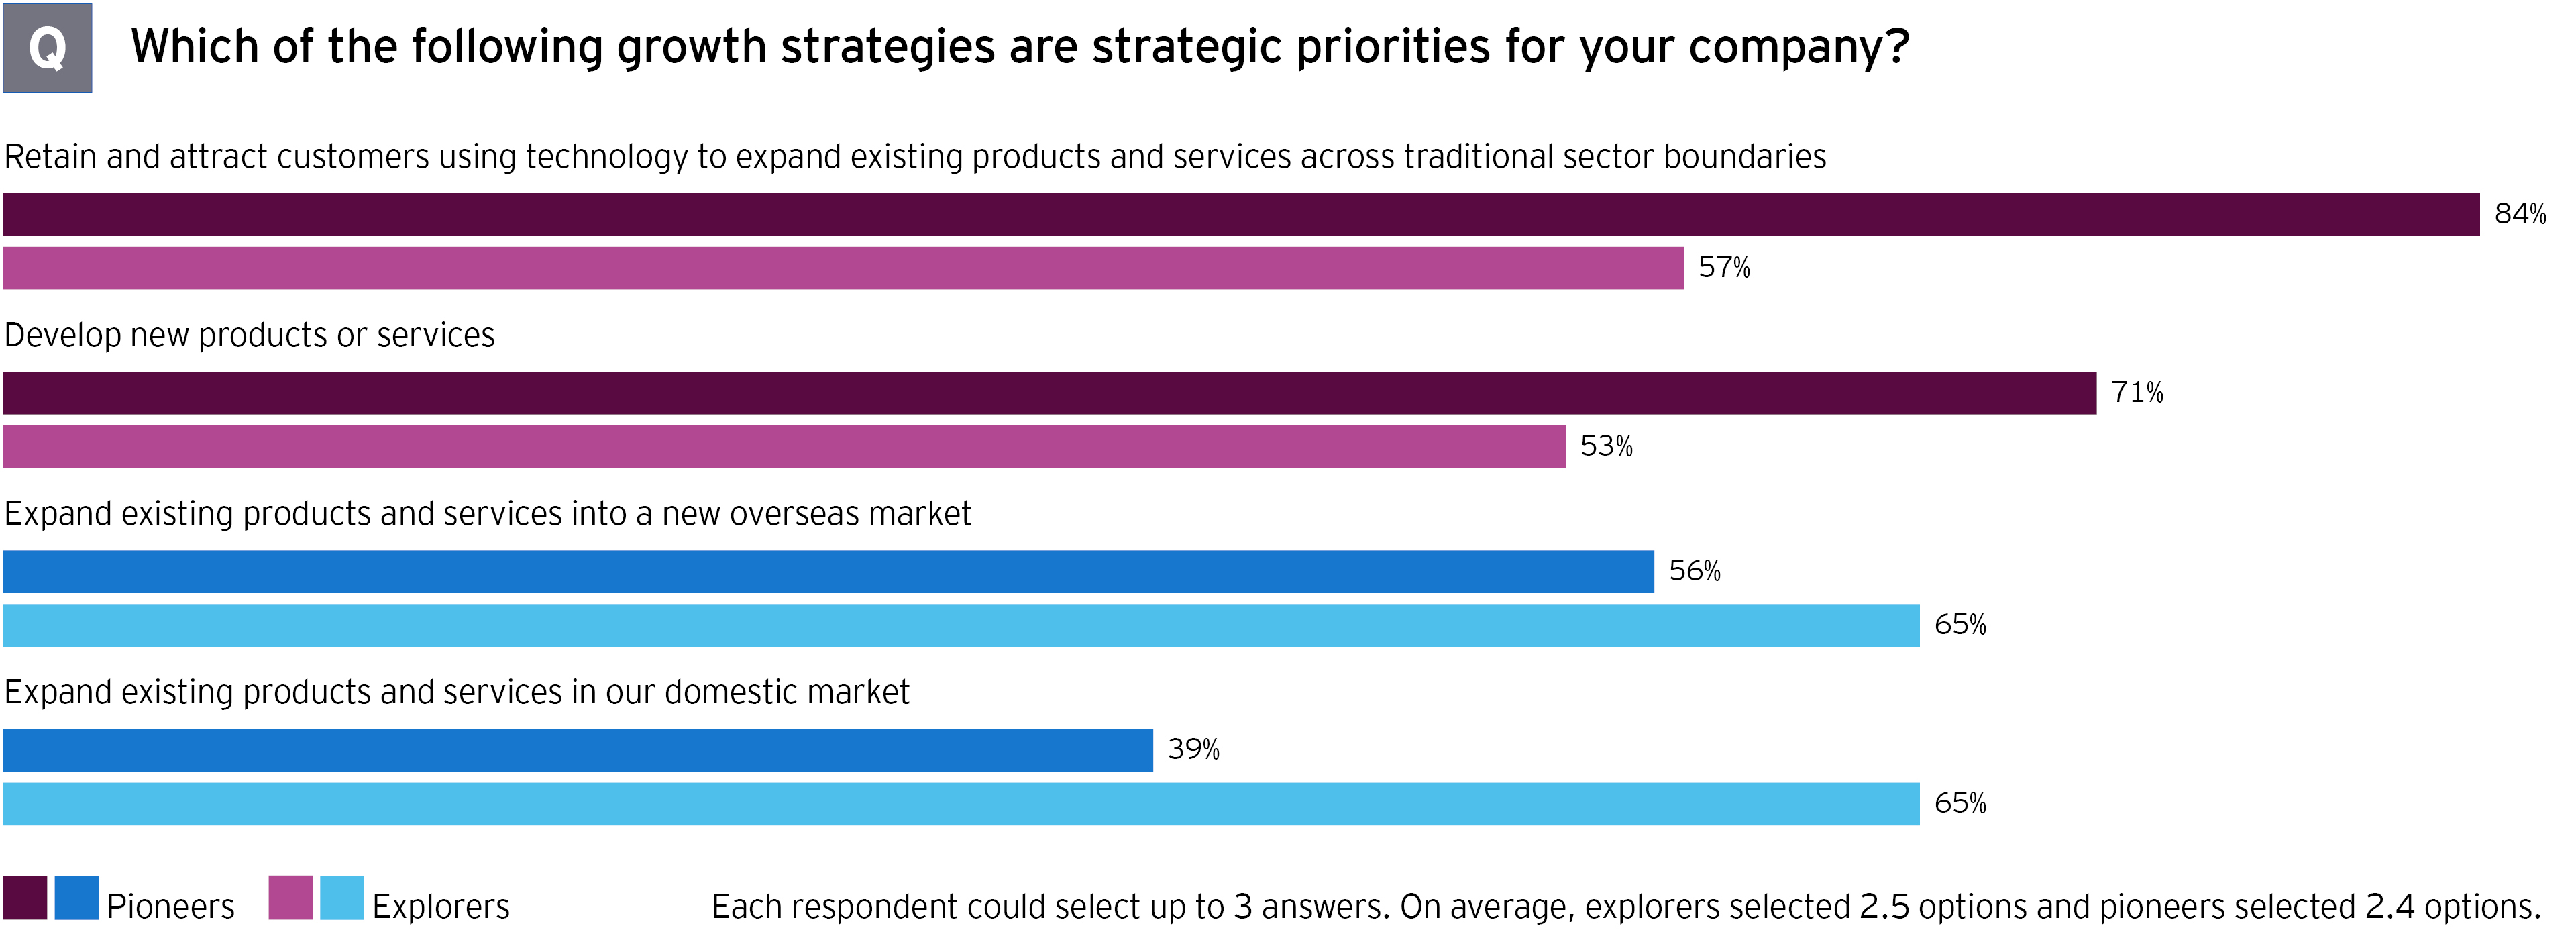 M&A survey which growth strategies strategic priority